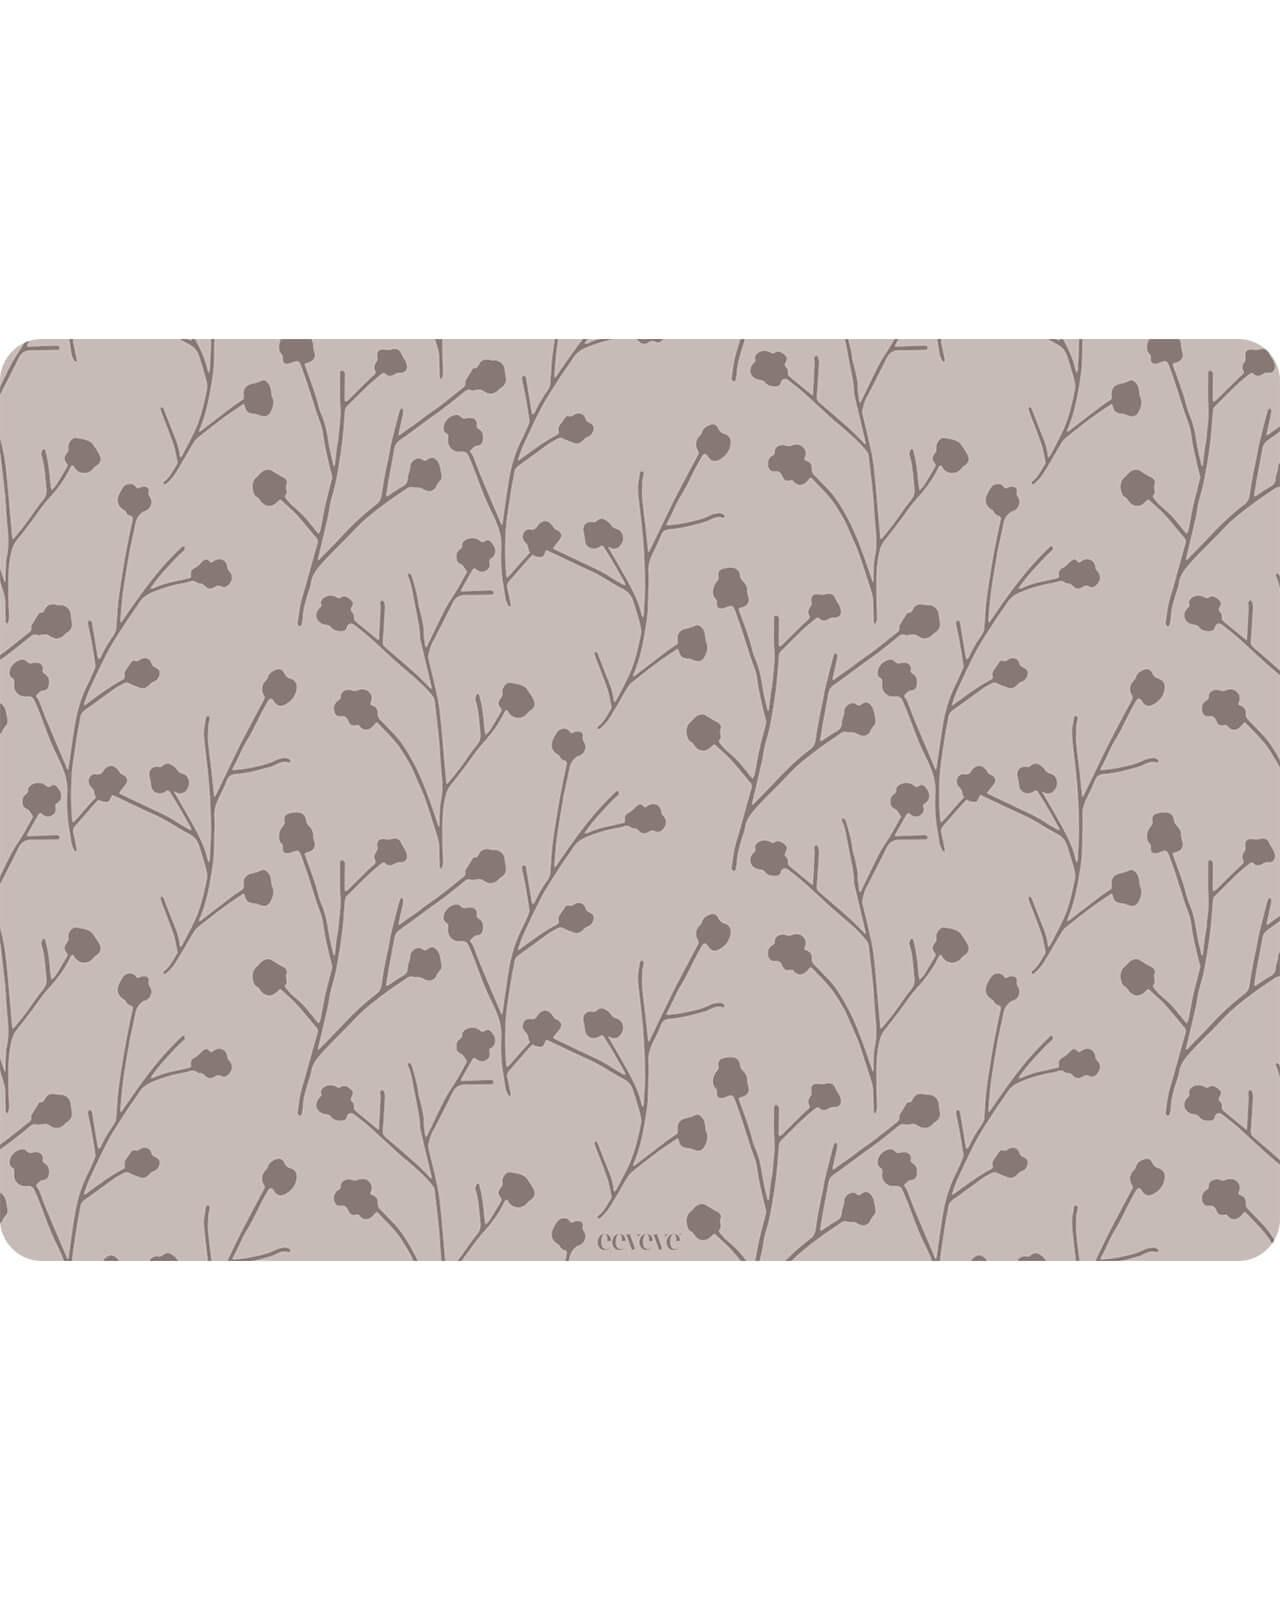 Eeveve - 6x Placemats Flower twig - Dust